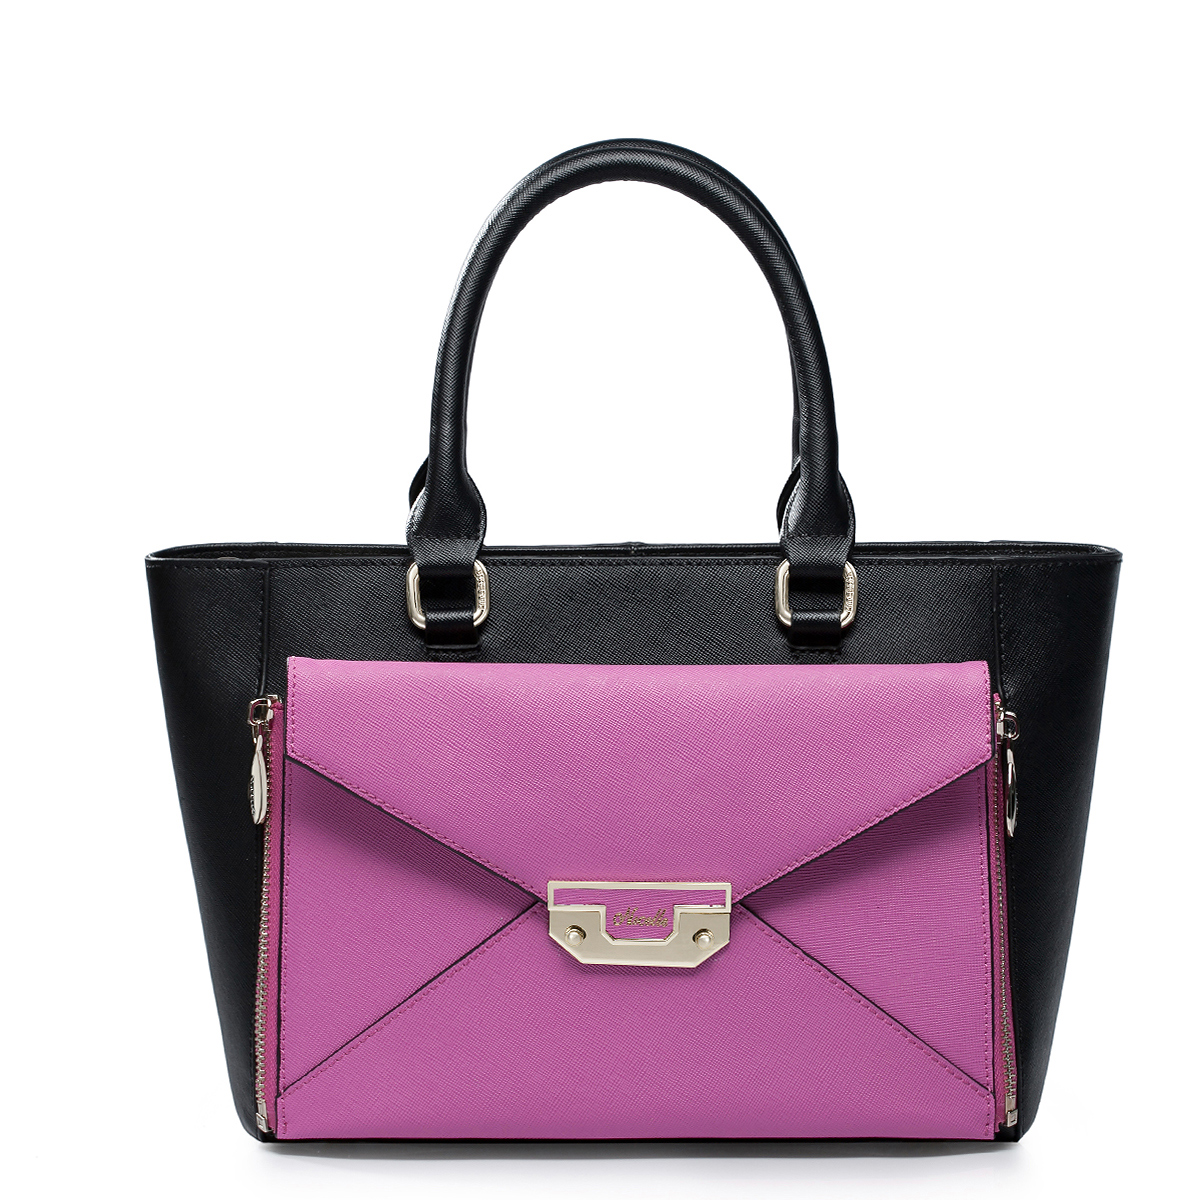 2014 New Designer Handbag Black